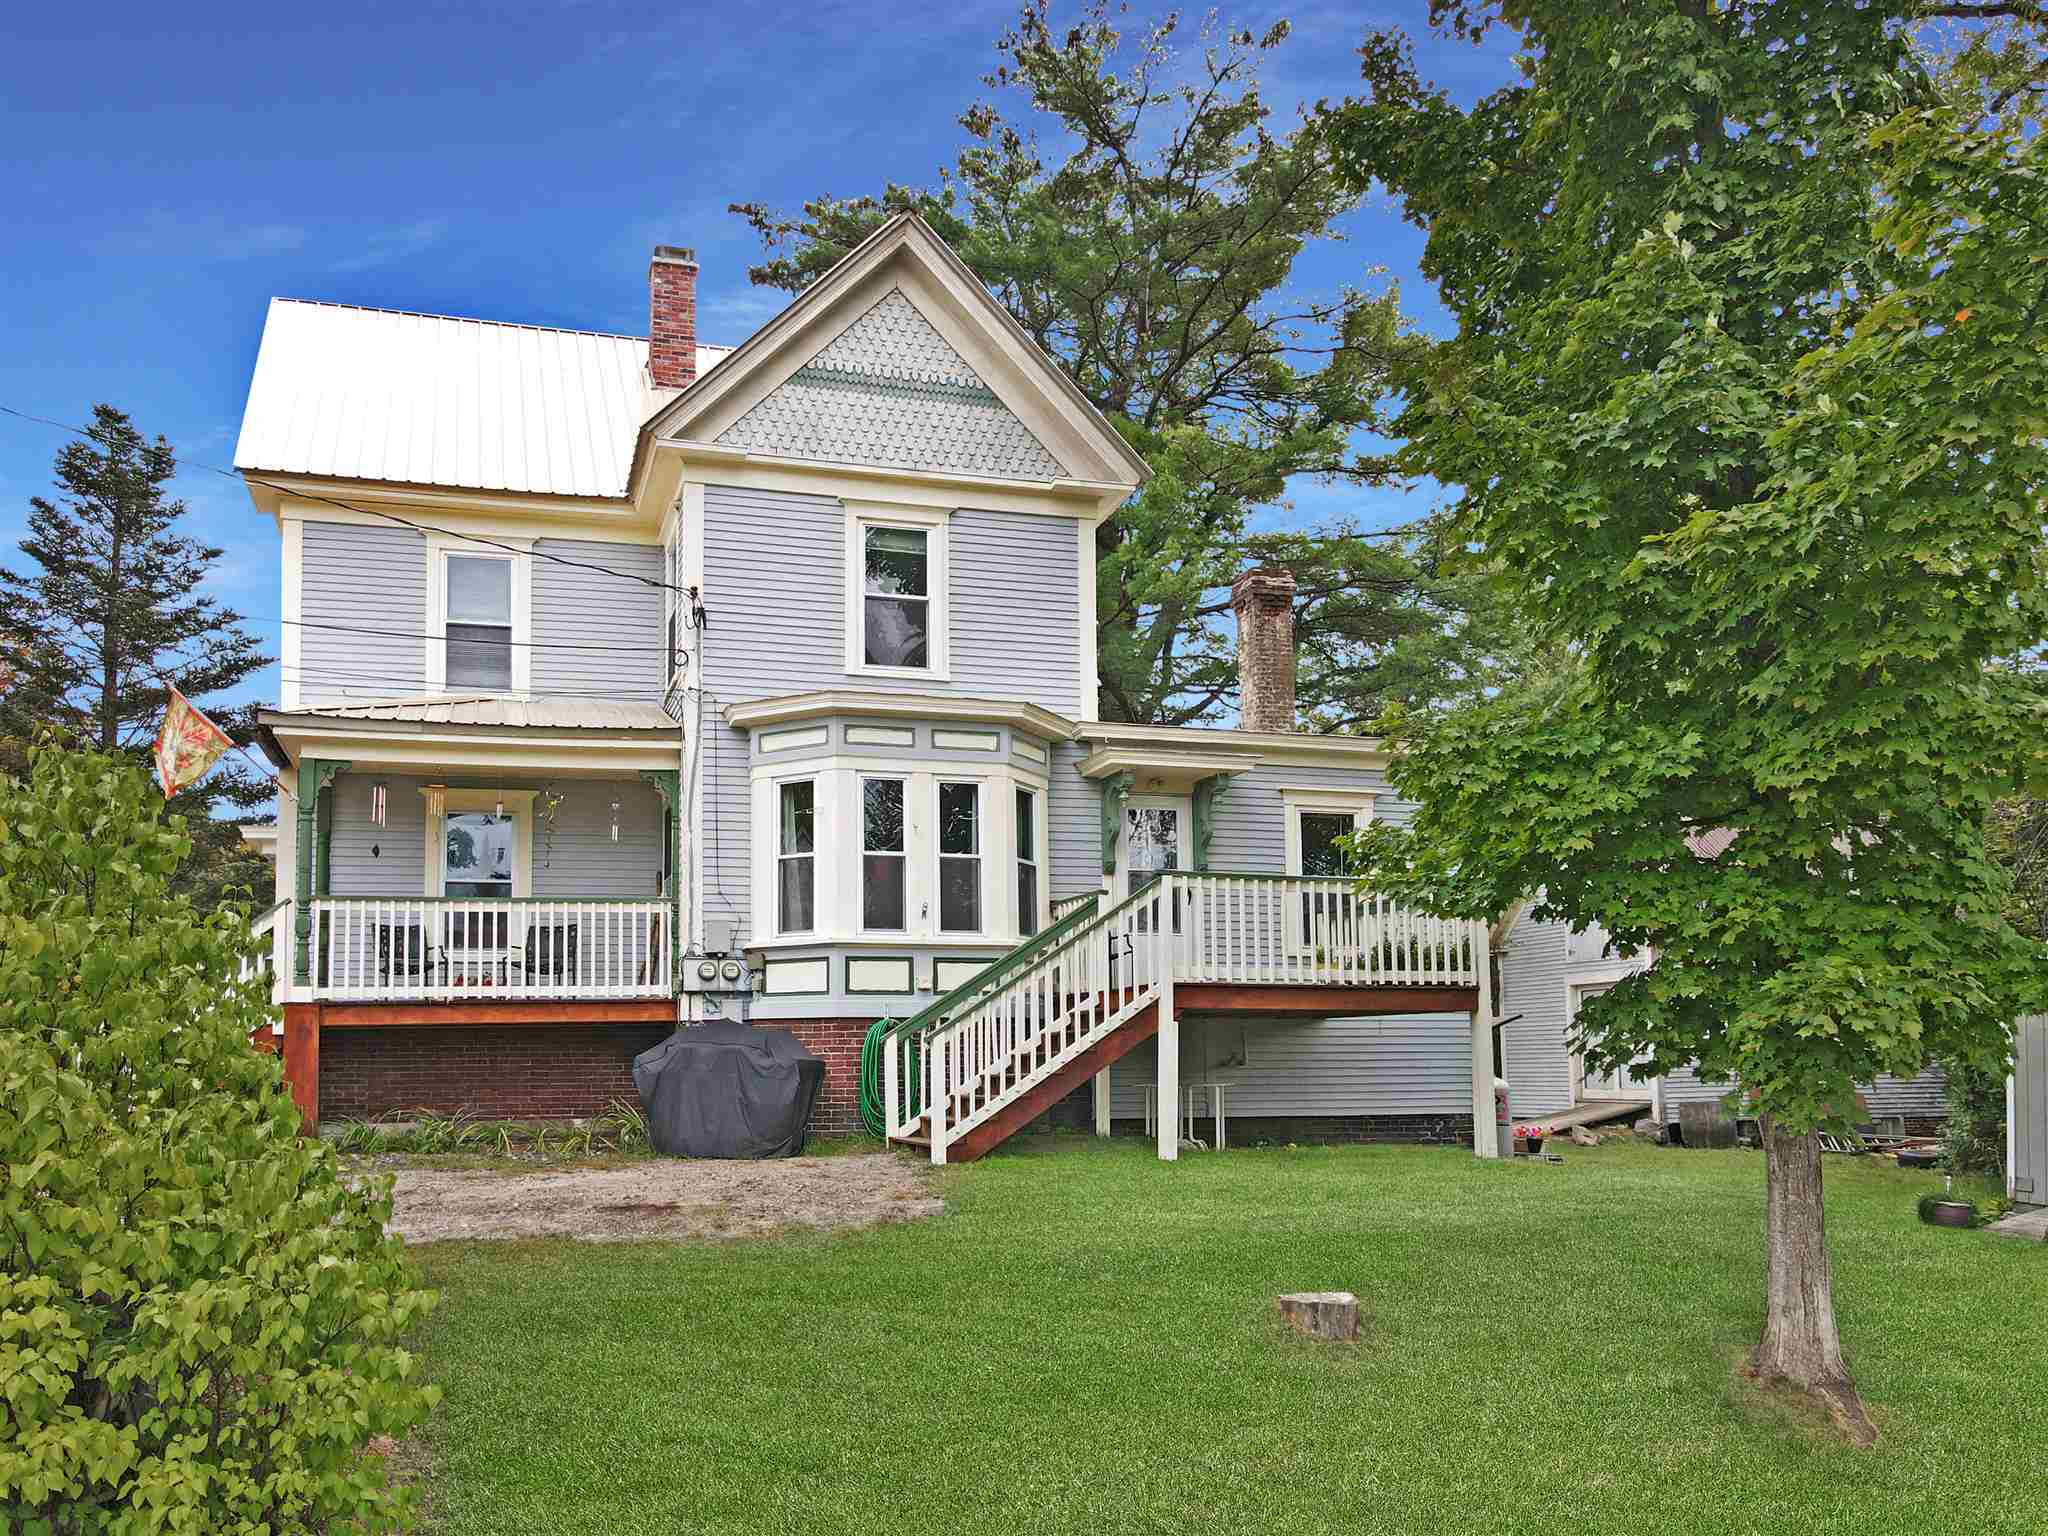 MLS 4829791: 10 Washington Street, Ashland NH